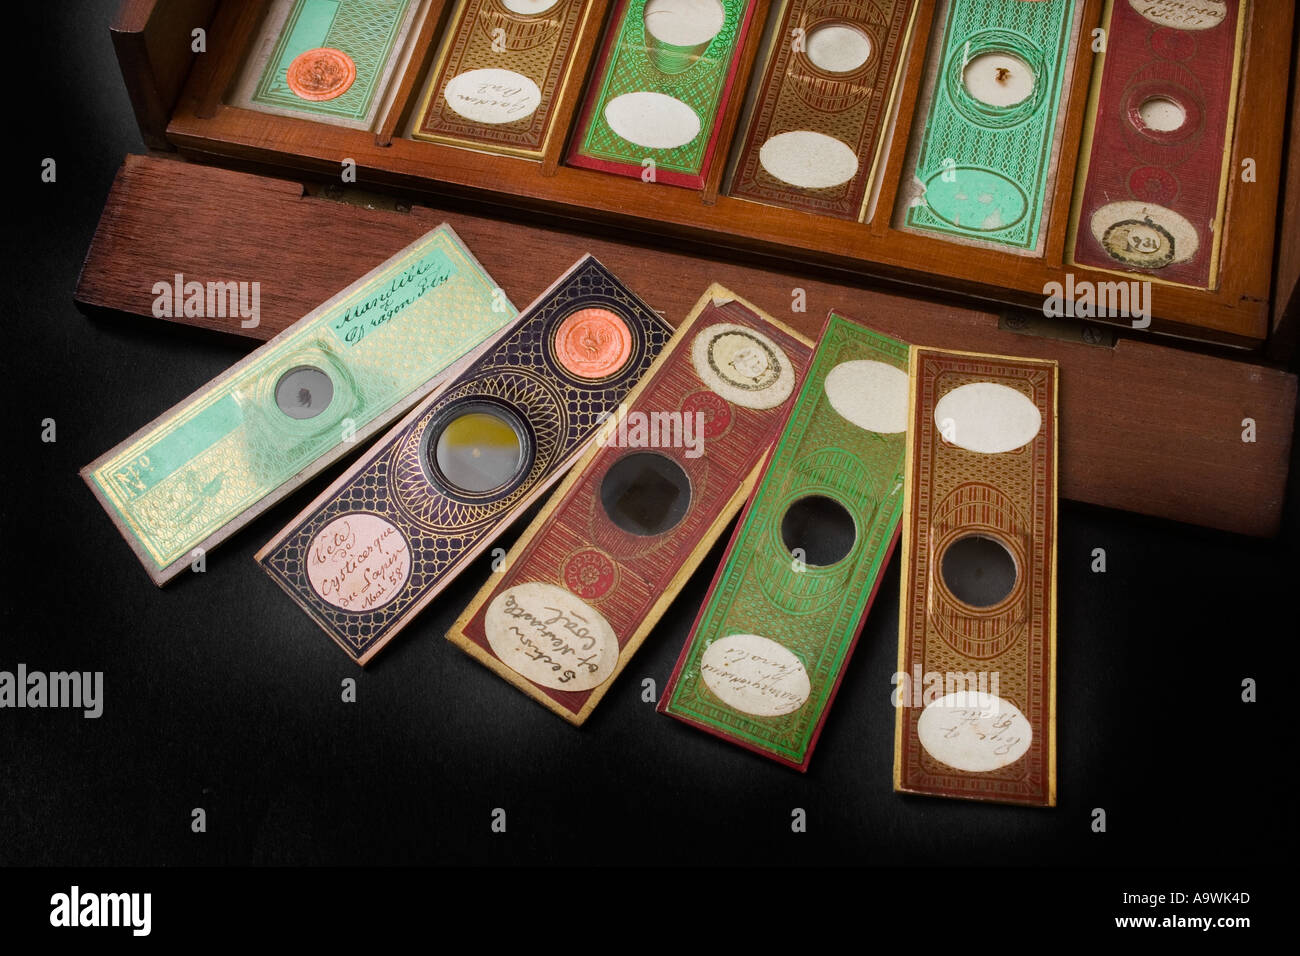 Antique microscope slides paper covered - Stock Image